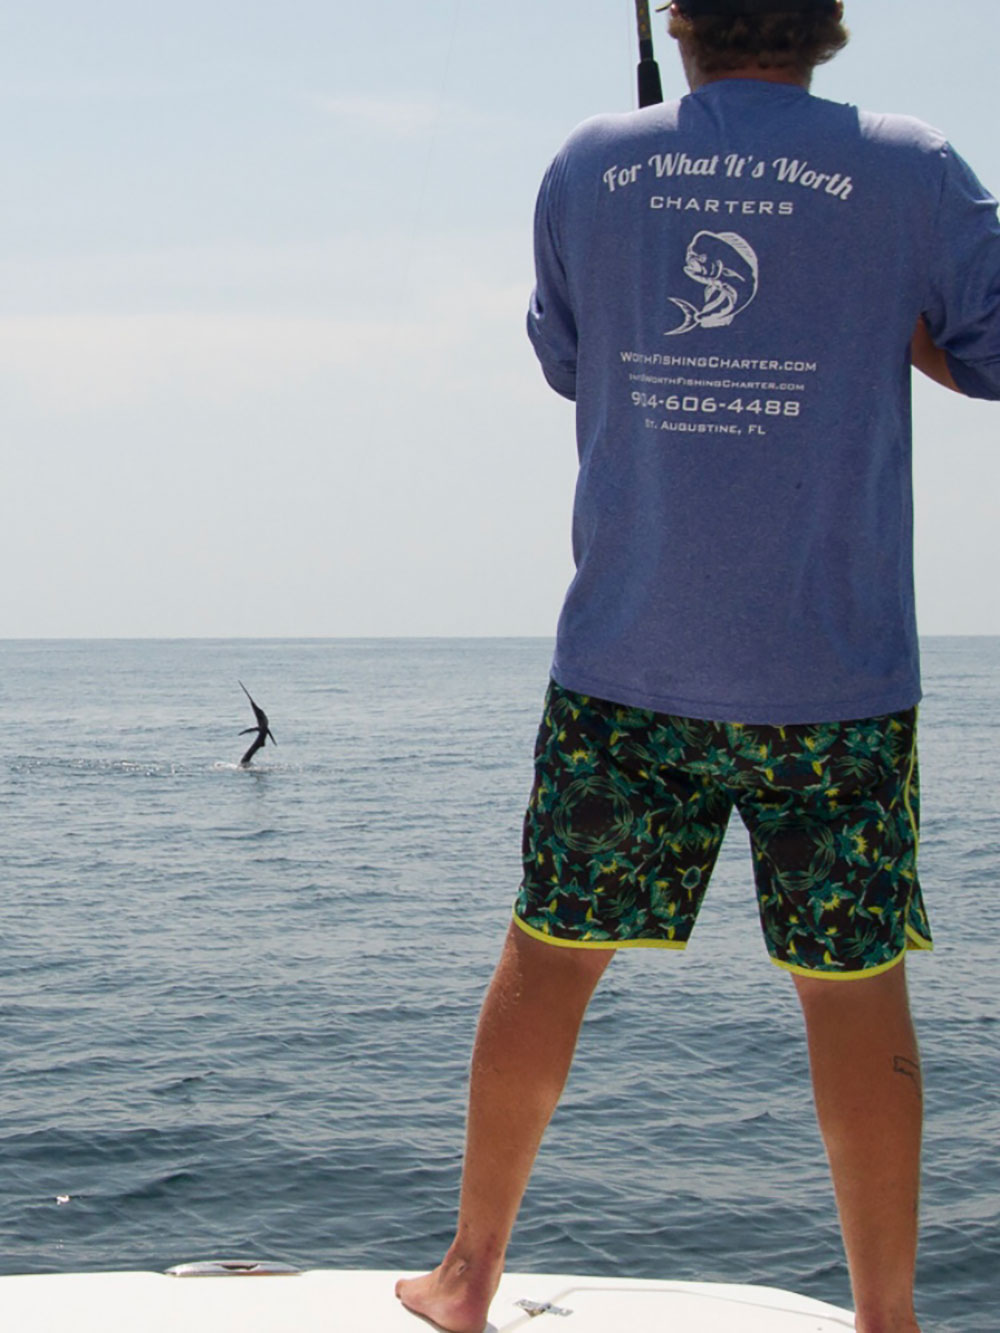 man facing backward wearing For What It's Worth Charters shirt while standing on boat edge reeling in a fish